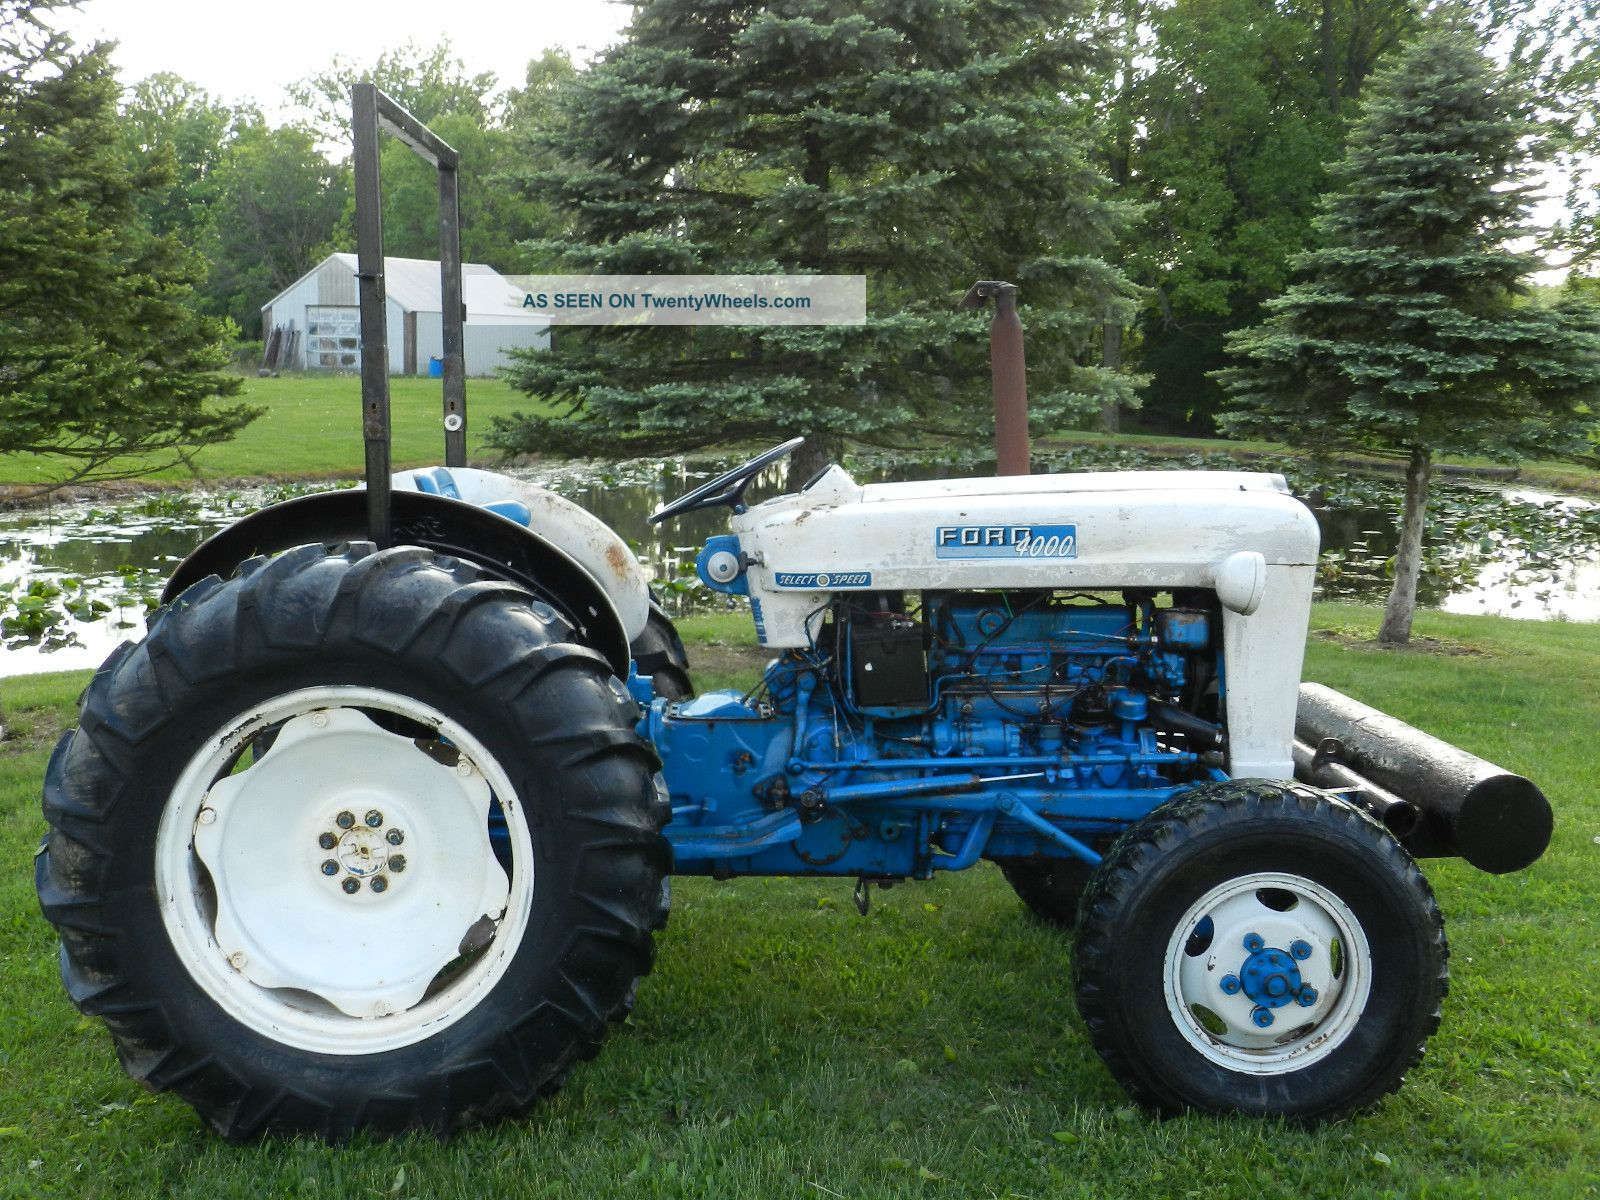 Ford 4000 Diesel Tractor : Roosamaster ford